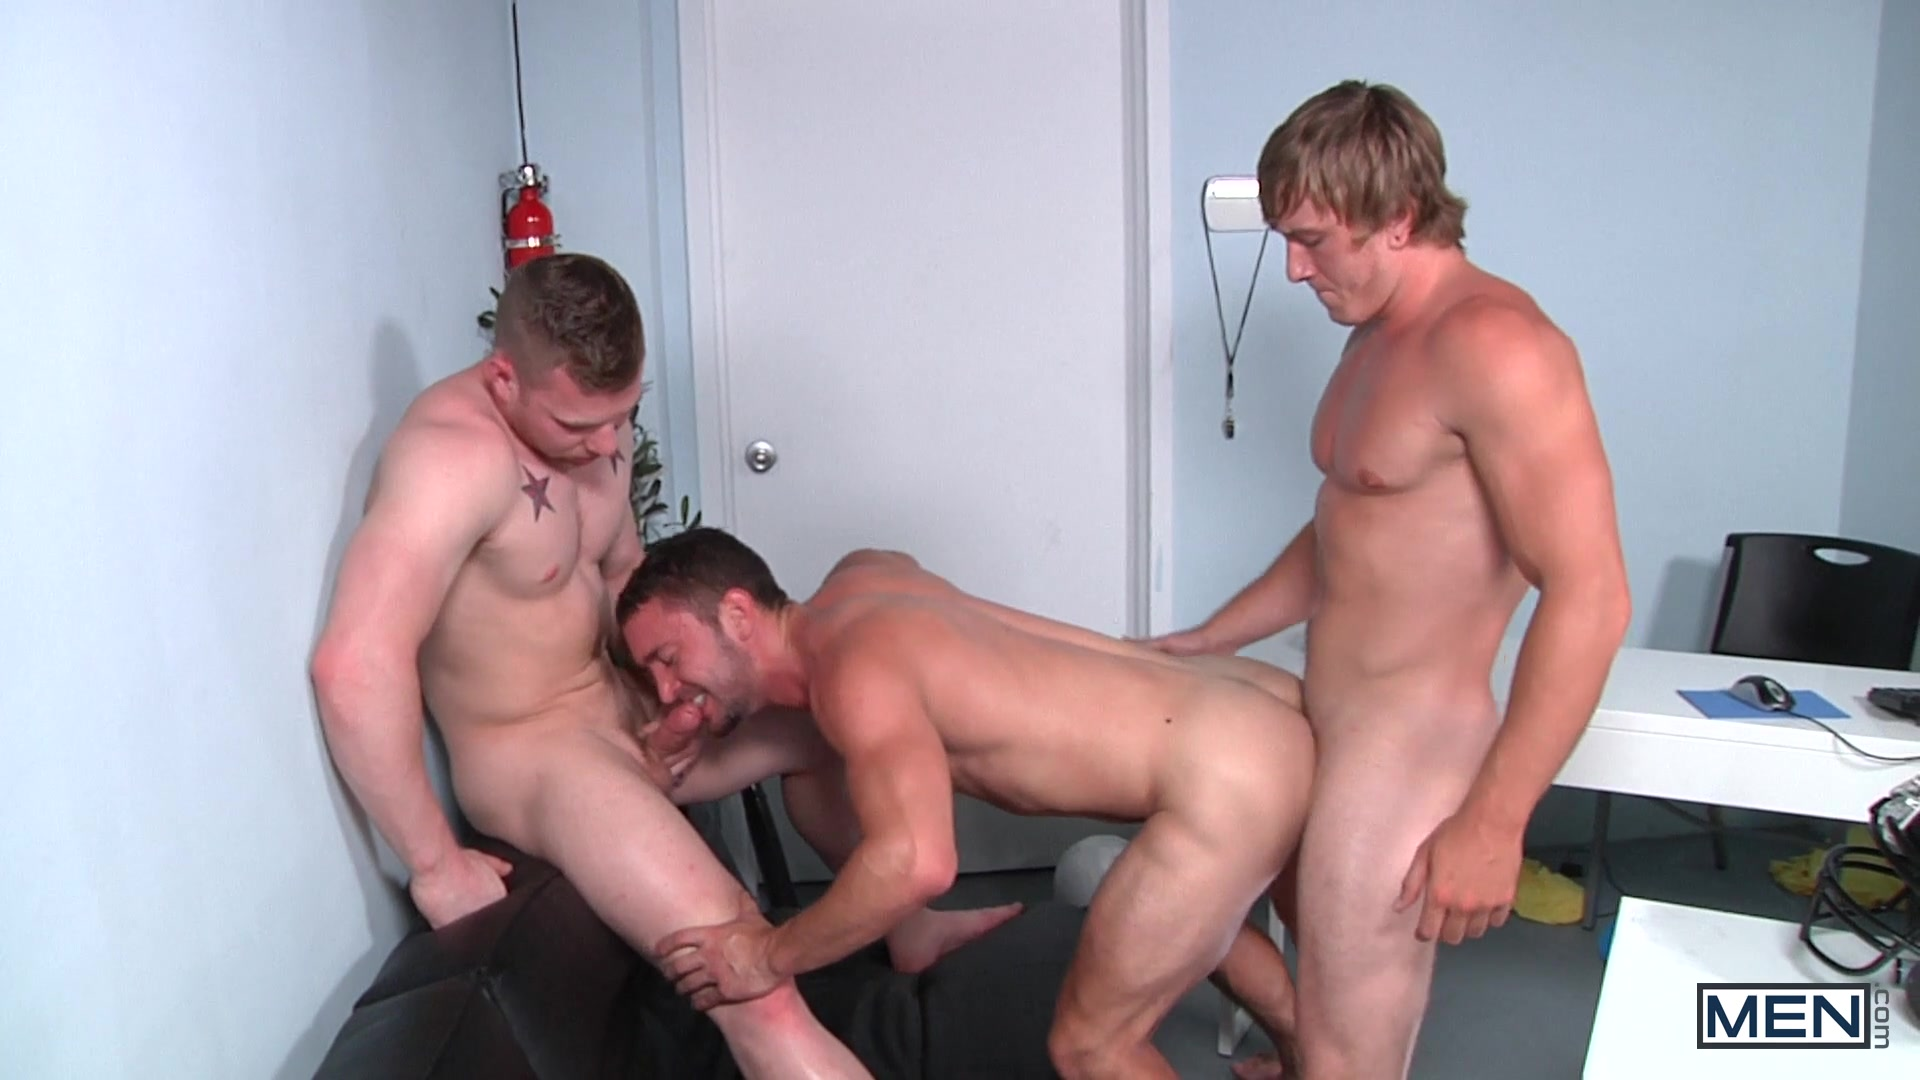 Watch Bump! Part 2 – Bdas – Big Dicks At School – Colt Rivers – Owen Michaels – Tom Faulk (MEN.COM) Gay Porn Tube Videos Gifs And Free XXX HD Sex Movies Photos Online